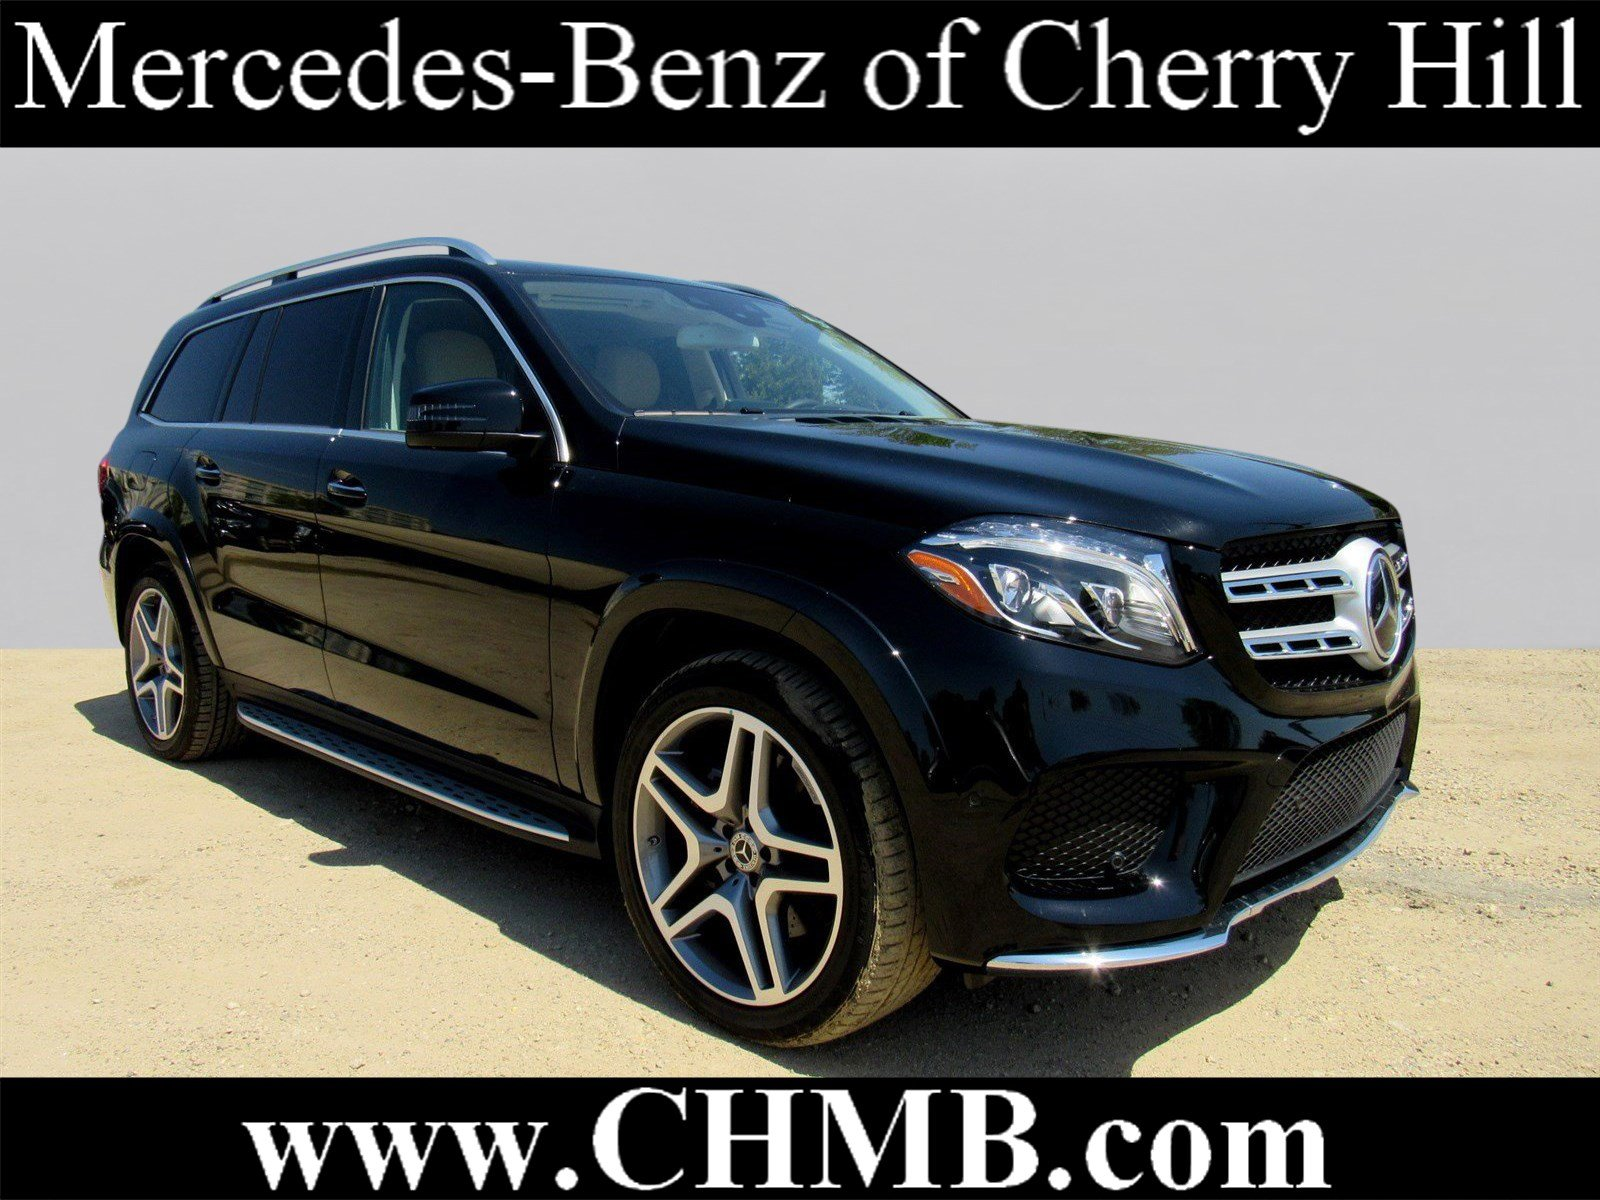 Pre Owned 2017 Mercedes Benz GLS GLS 550 SUV in Cherry Hill M0445